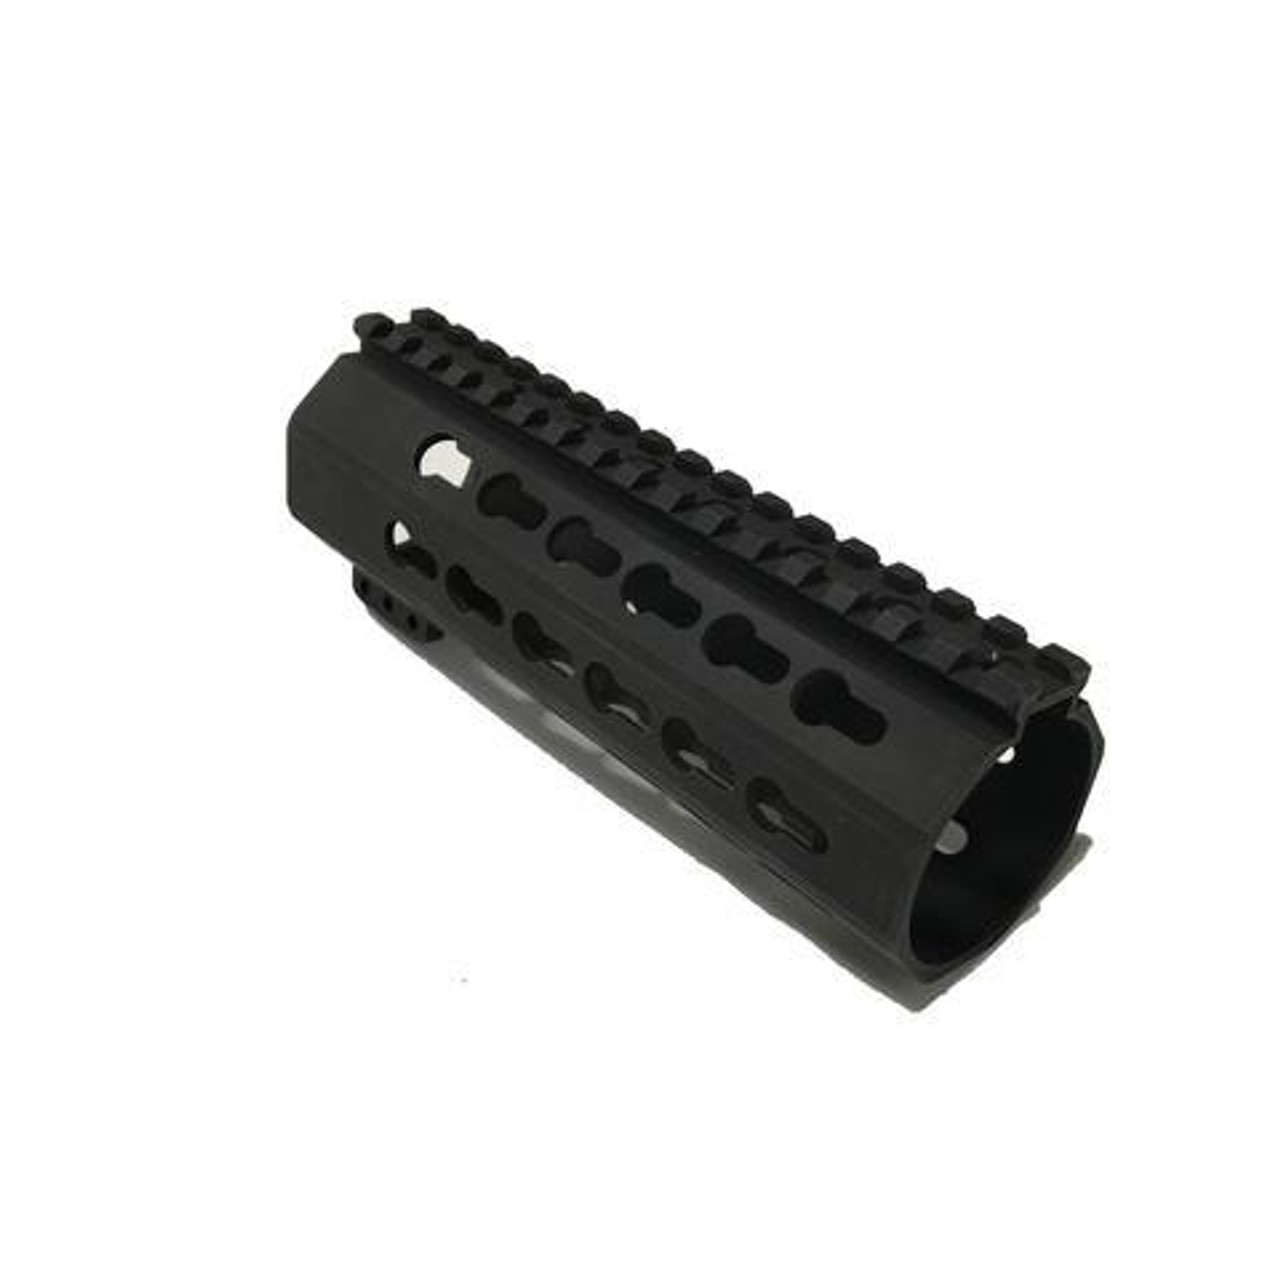 Pantheon Arms Prometheus KC (KeyMod) handguard Only